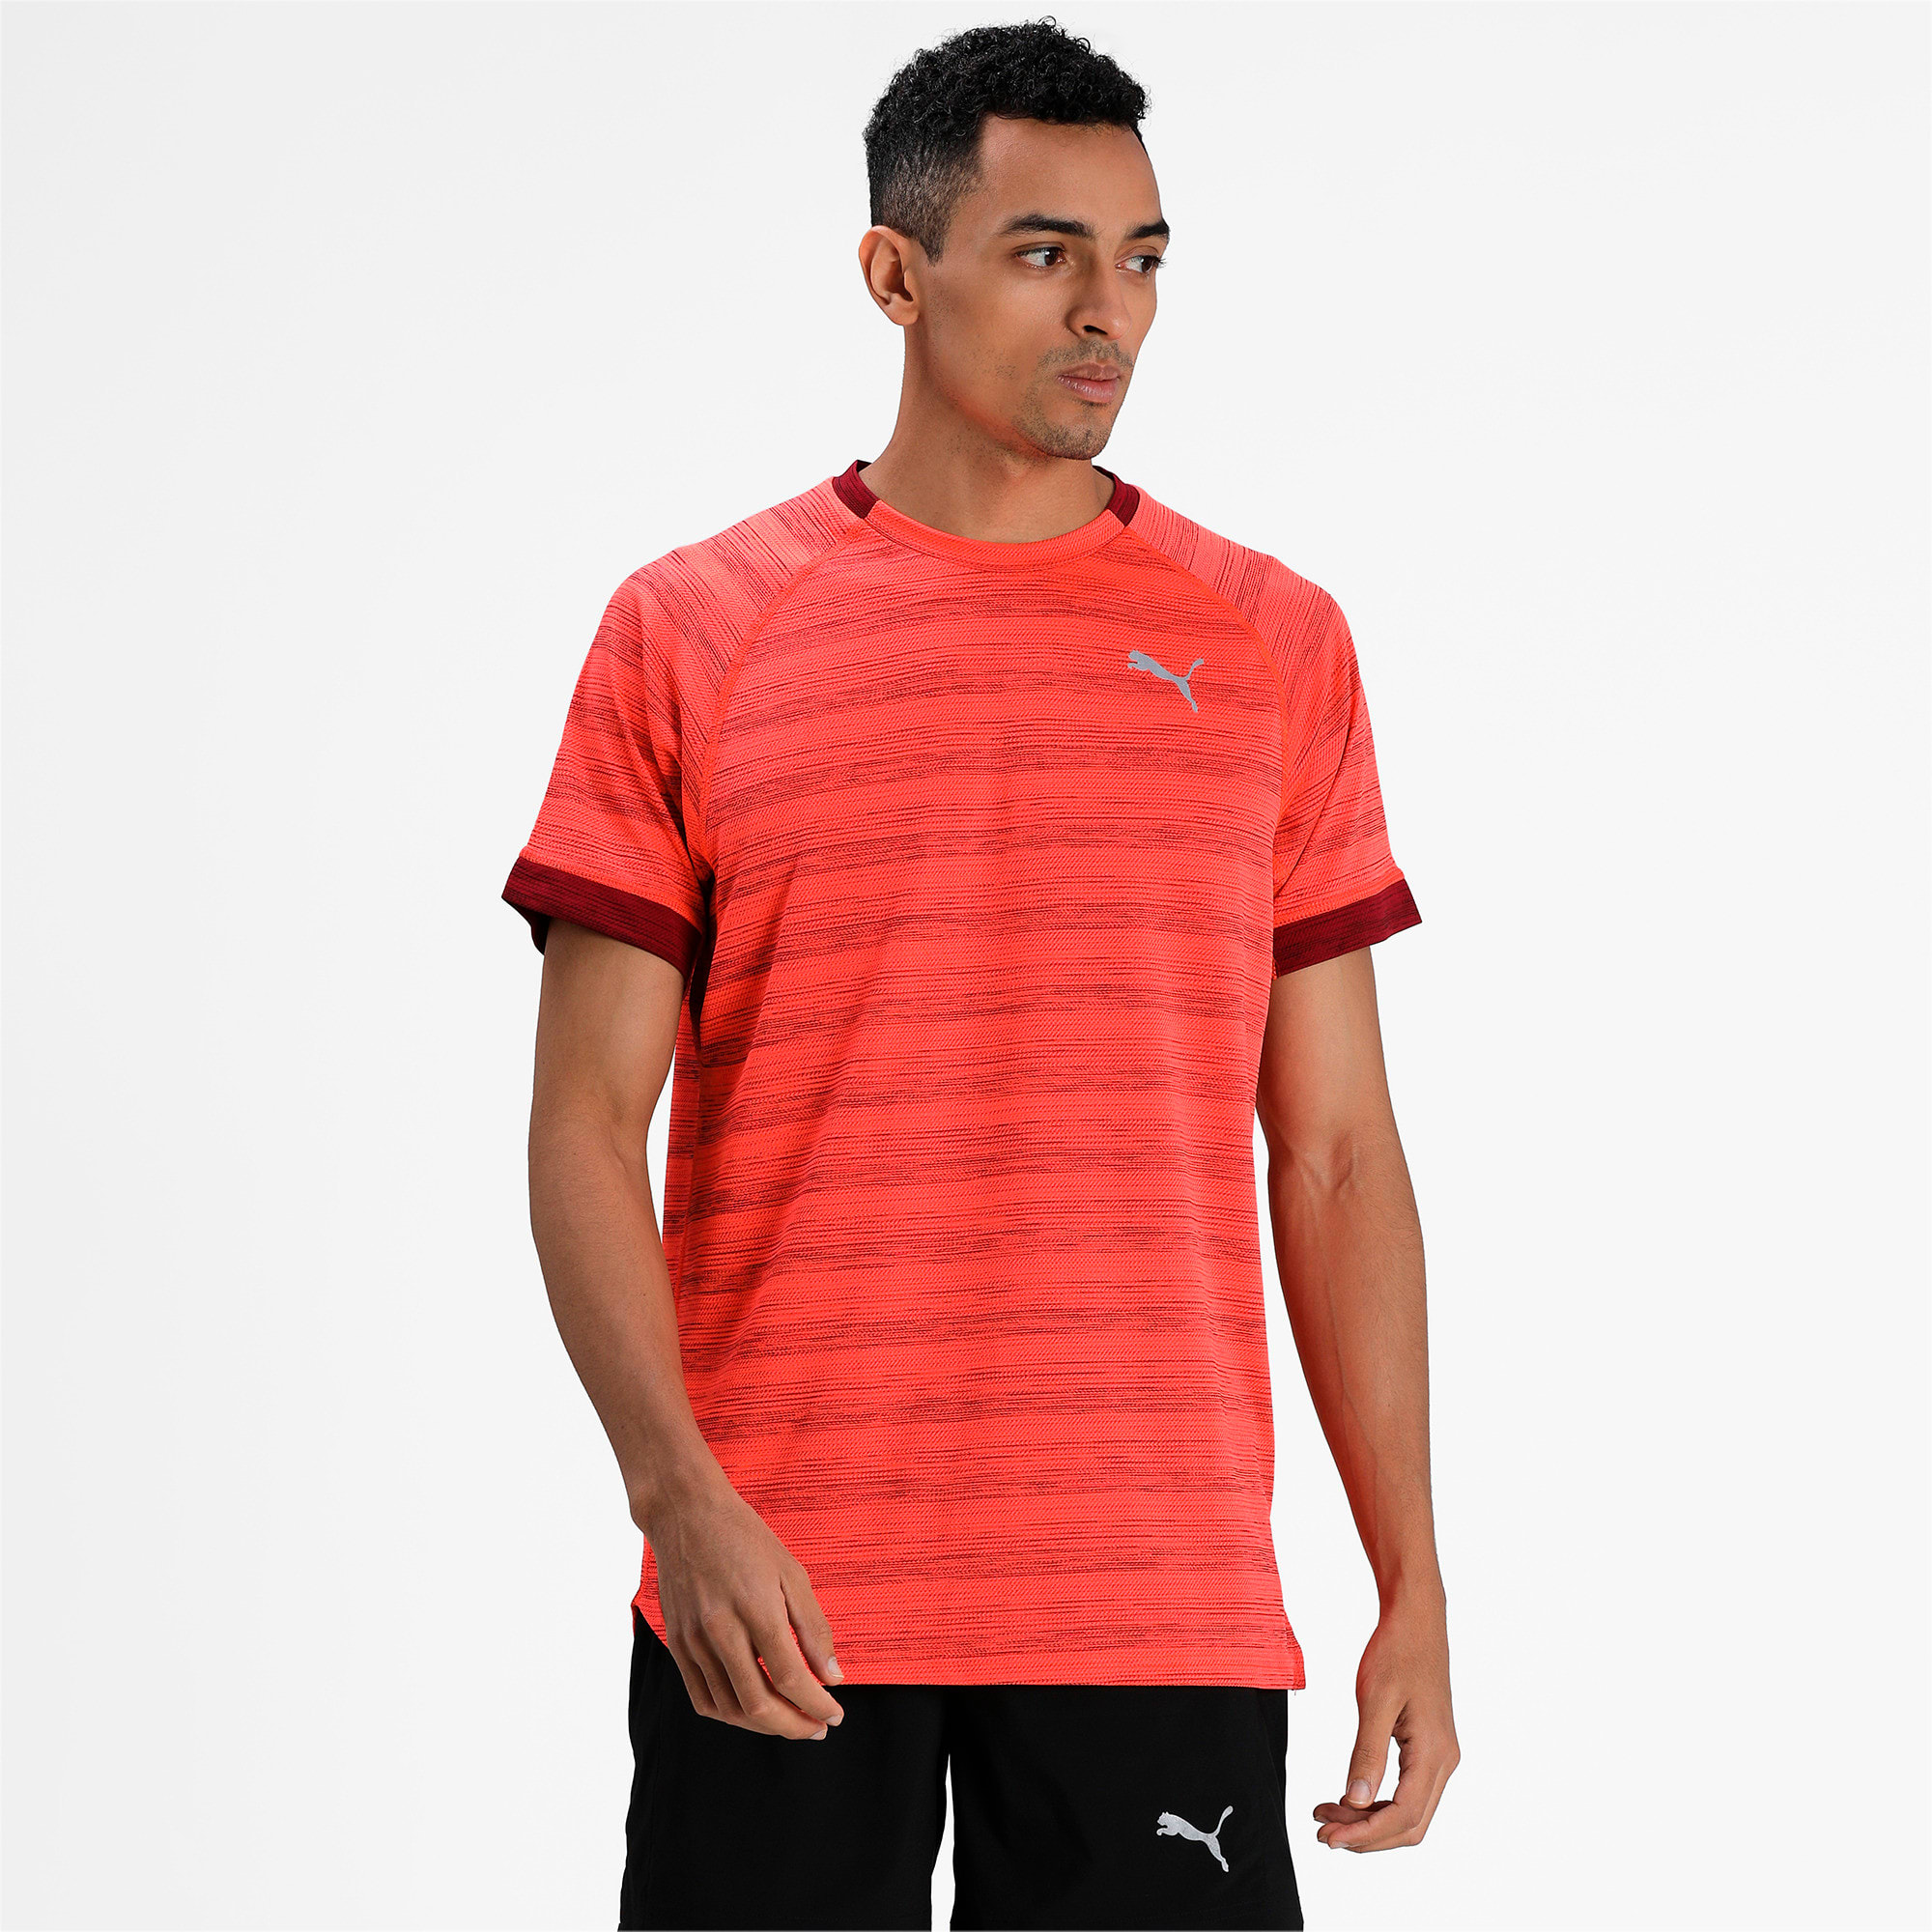 Thumbnail 1 of Get Fast THERMO R+ Men's Running Tee, Nrgy Red Htr-Rhubarb Htr, medium-IND